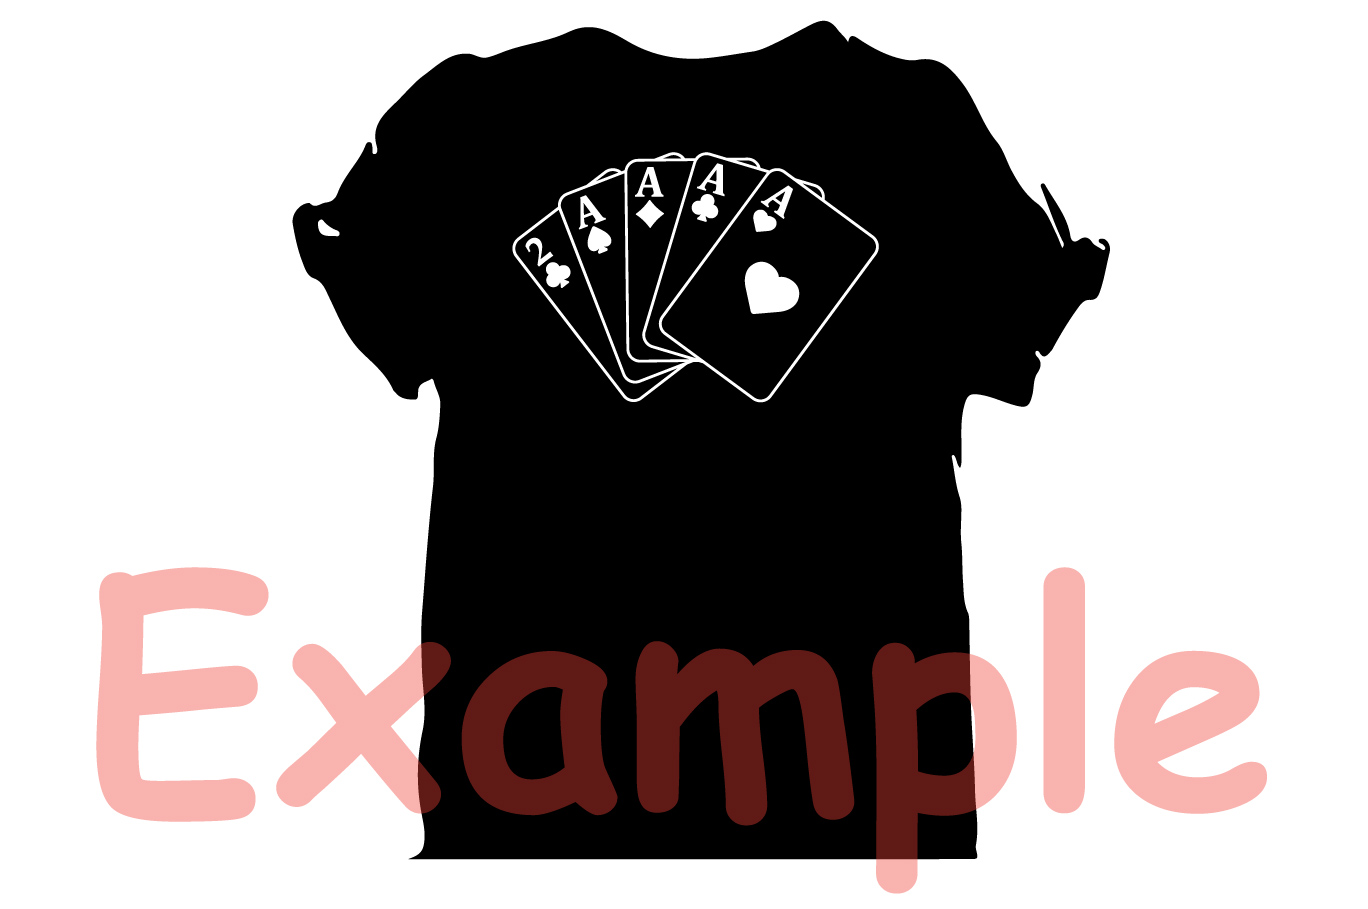 Poker Full House Straight Flush Four of a Kind Straight 742S example image 6